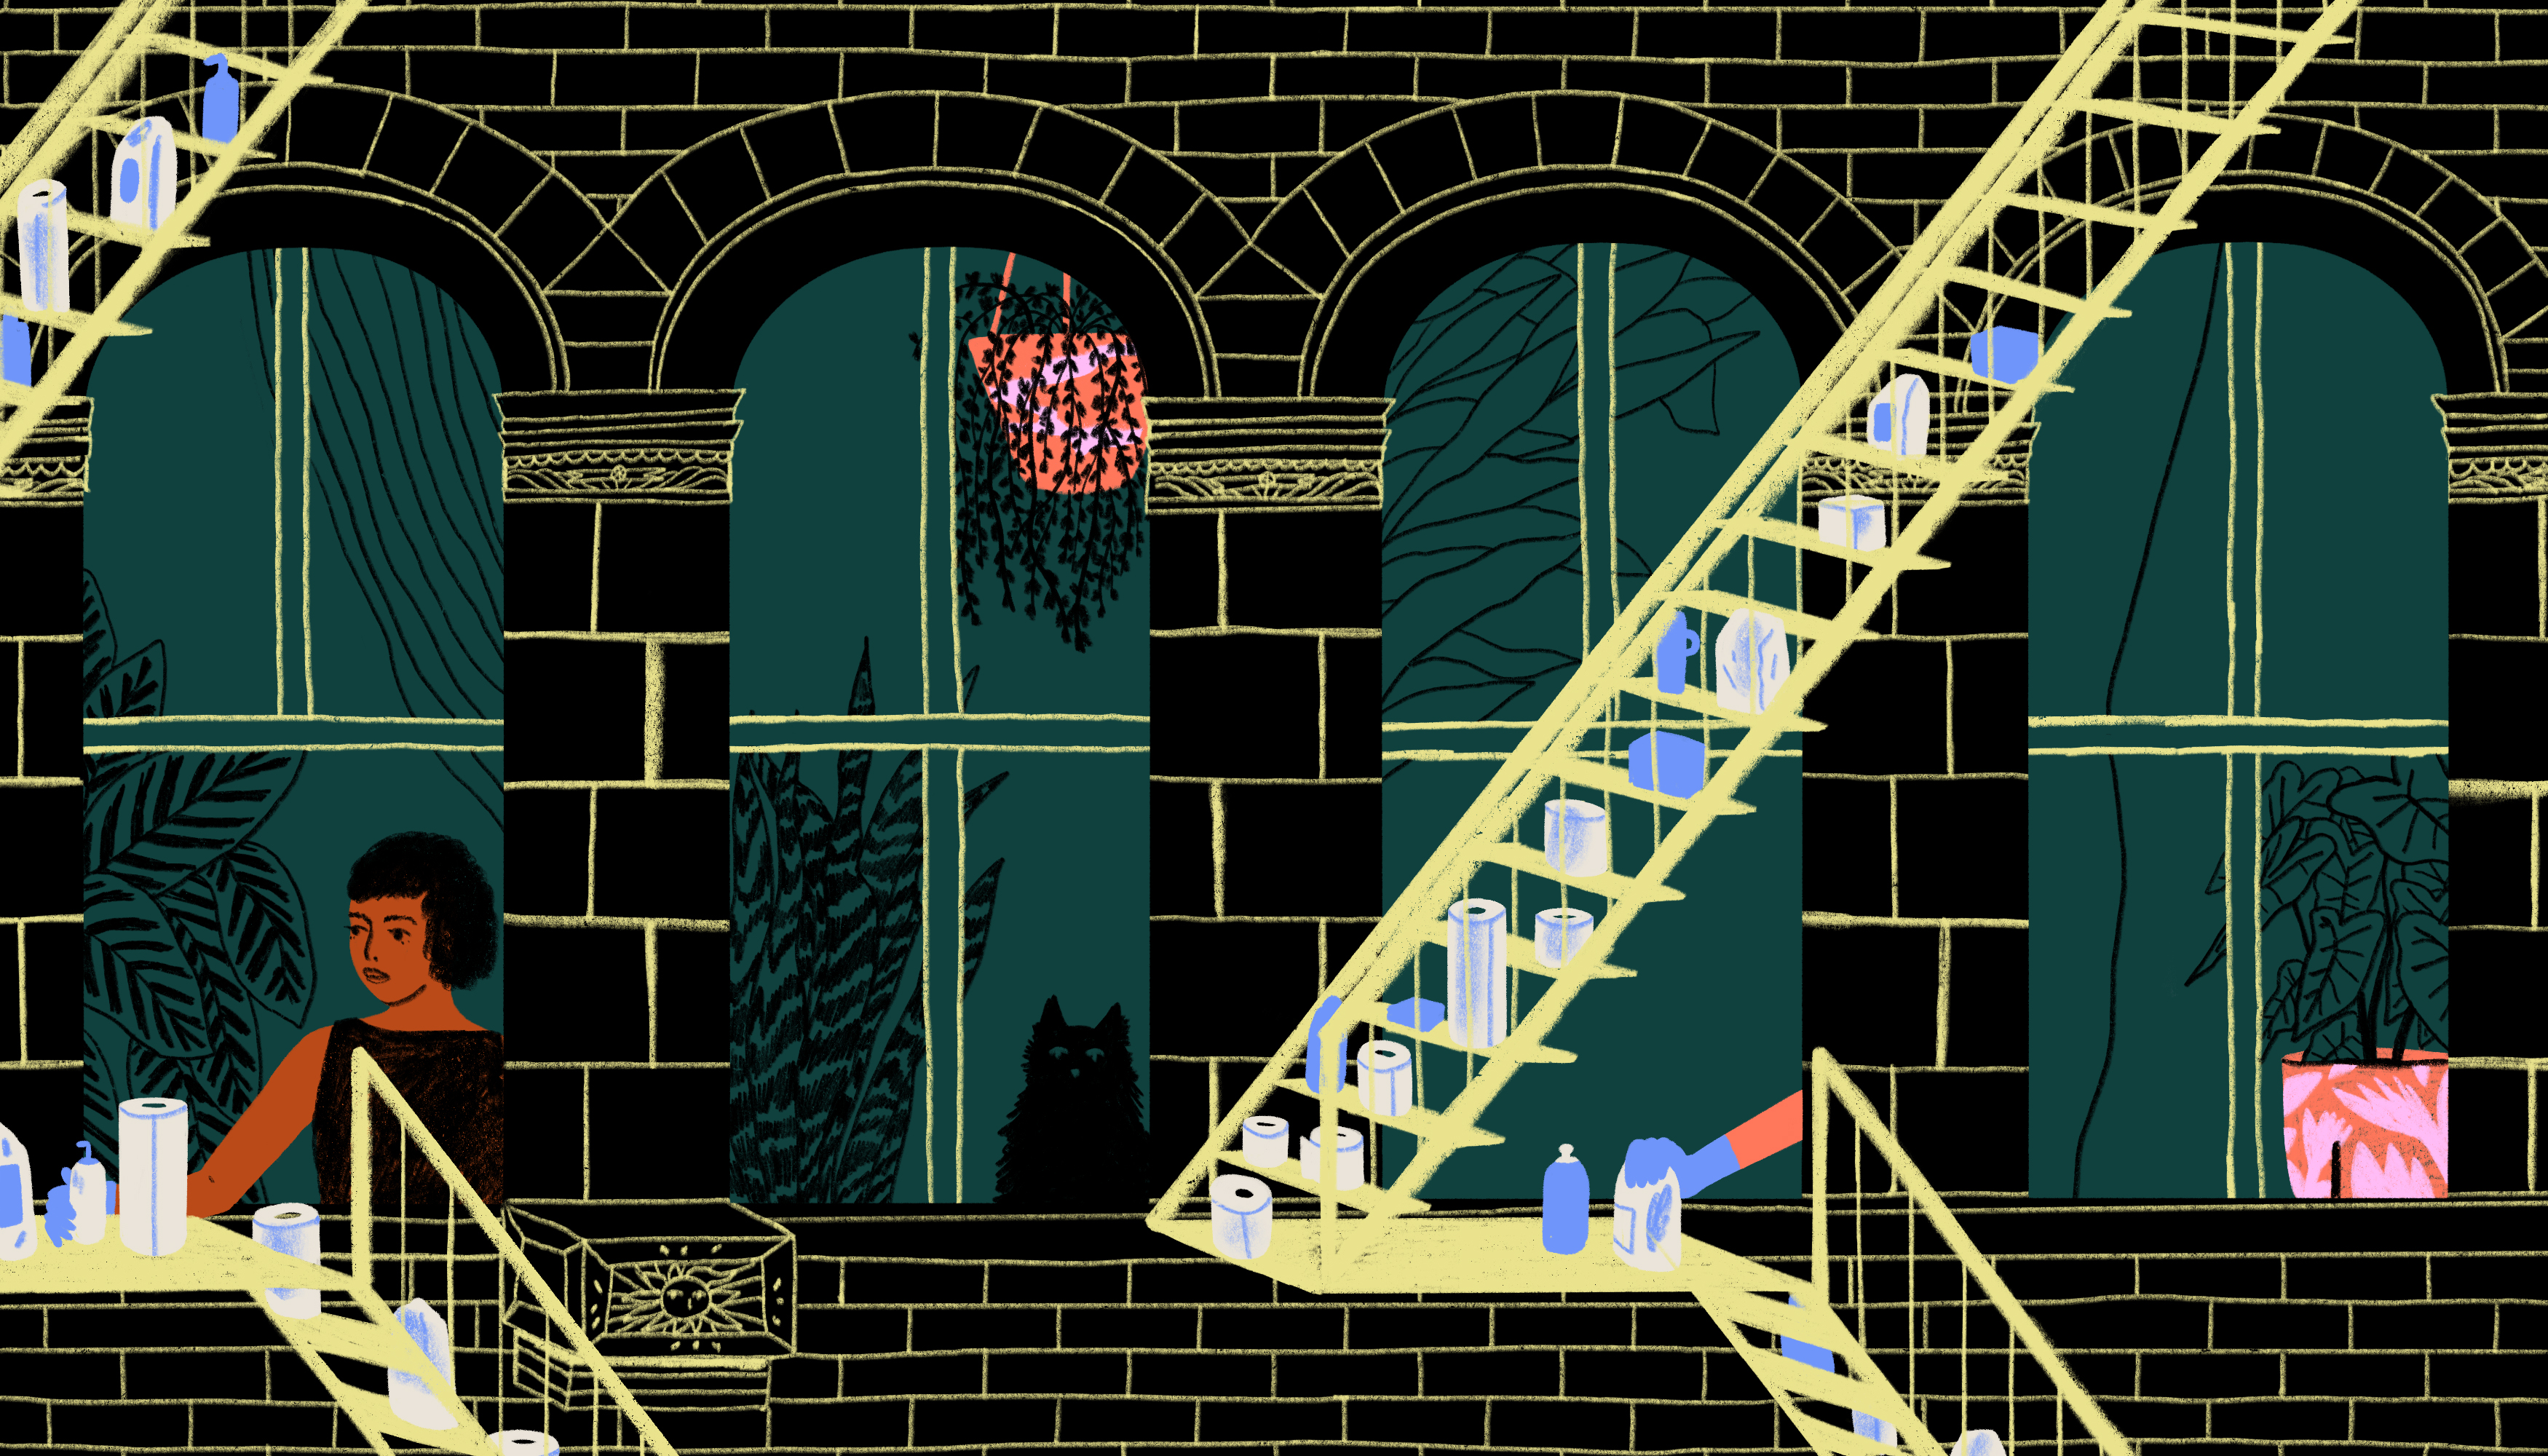 A close up on two residential, city fire escapes set with supplies like toilet paper, hand sanitizer and disinfecting wipes. Illustration.